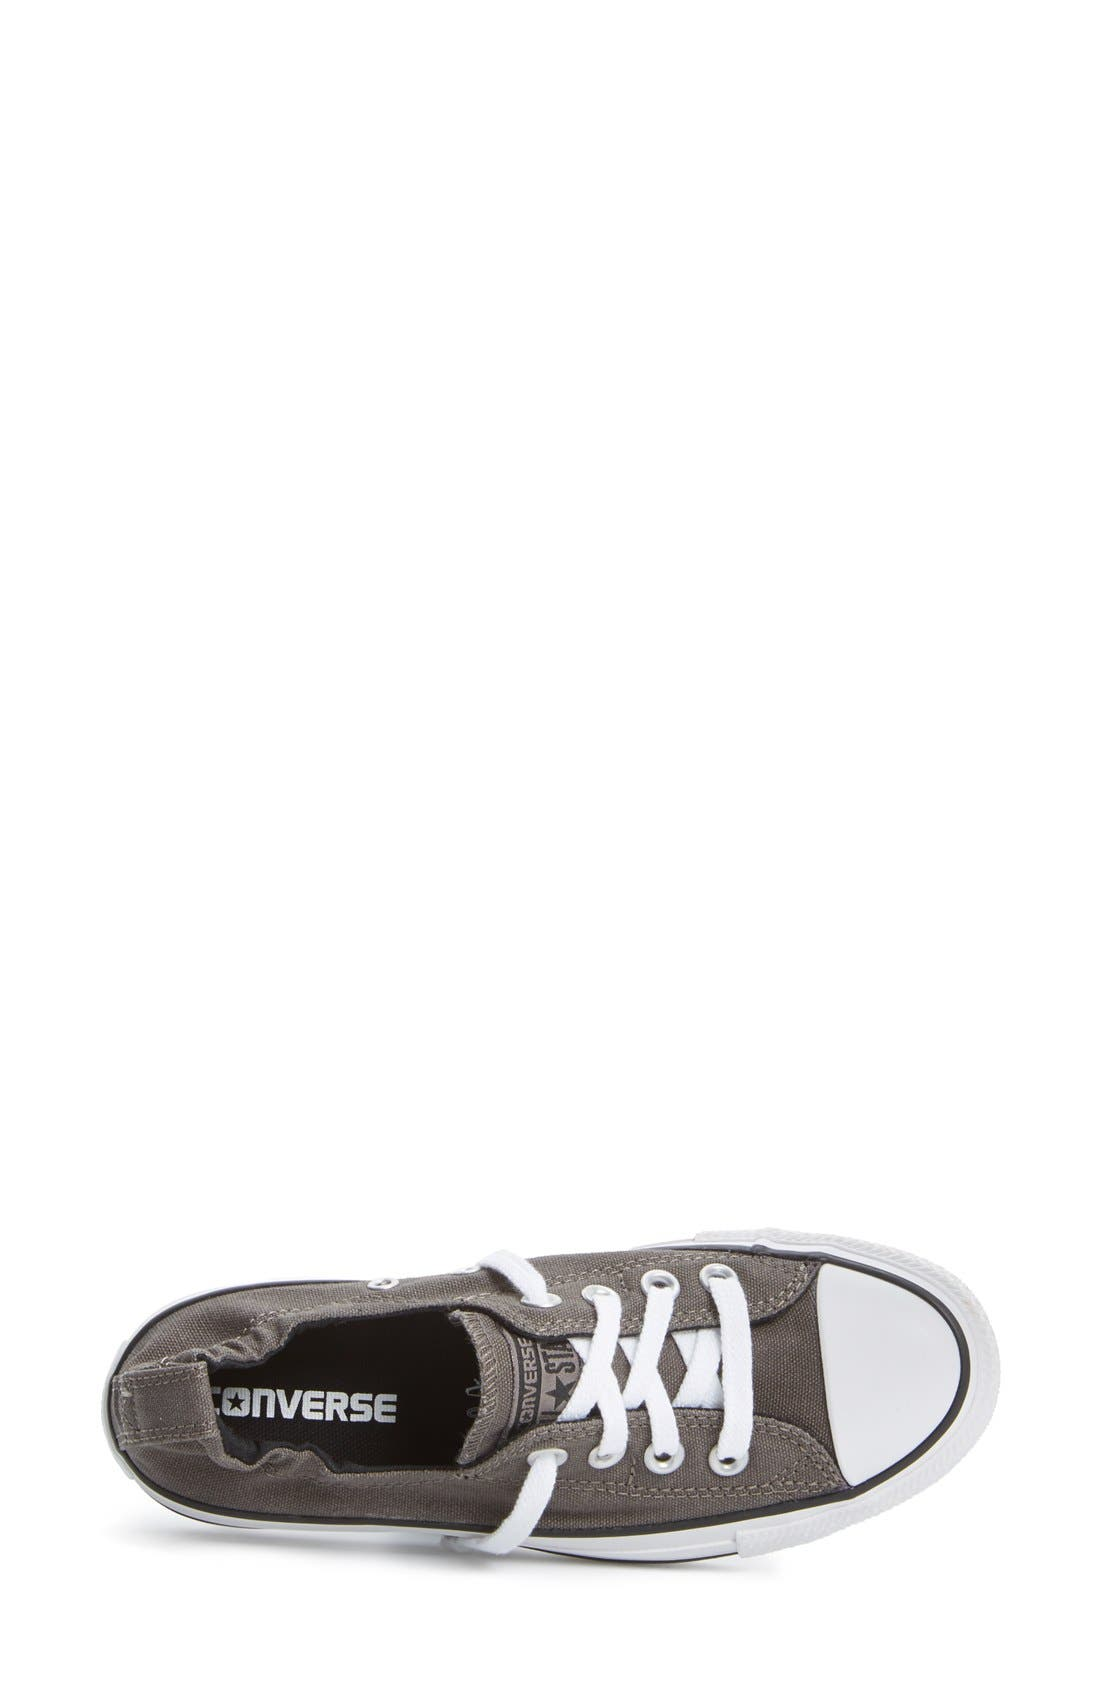 Alternate Image 3  - Converse Chuck Taylor® All Star® Shoreline Low Top Sneaker (Women)